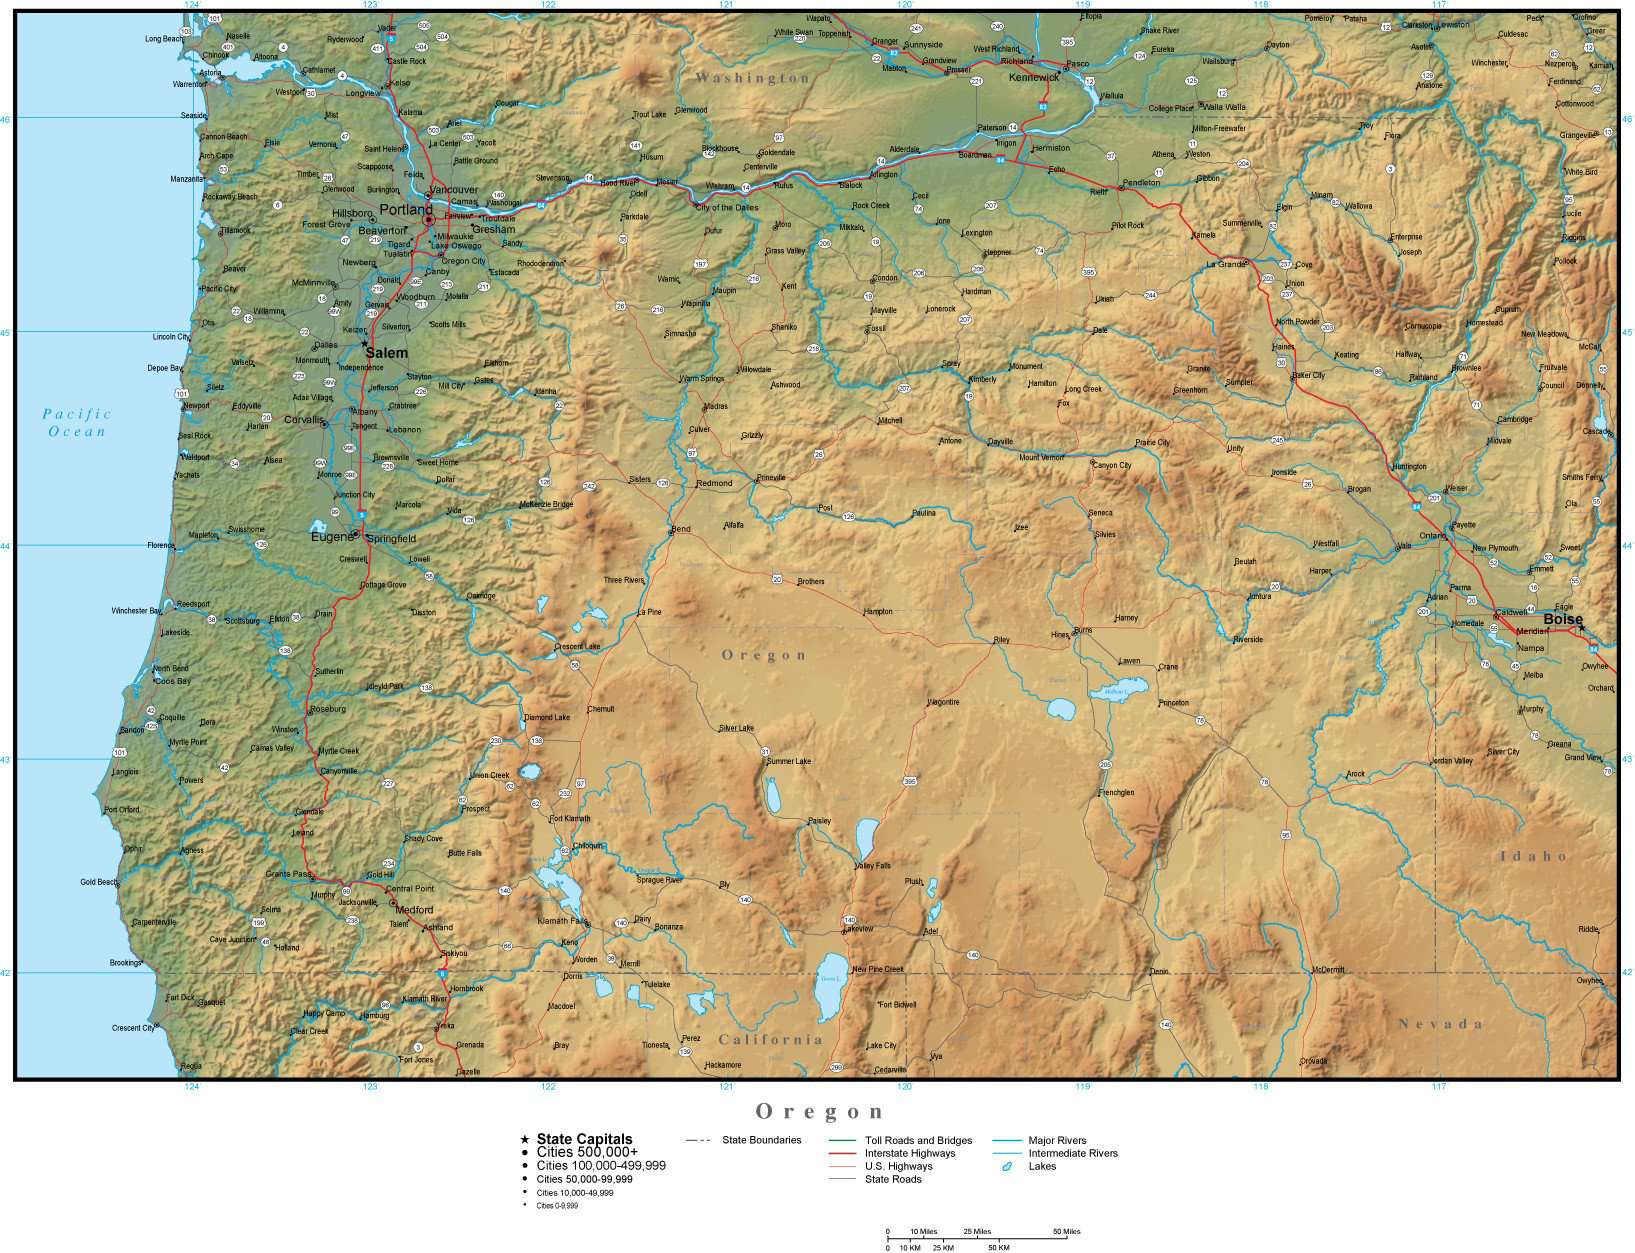 Oregon Map Plus Terrain with Cities Roads and Water Features